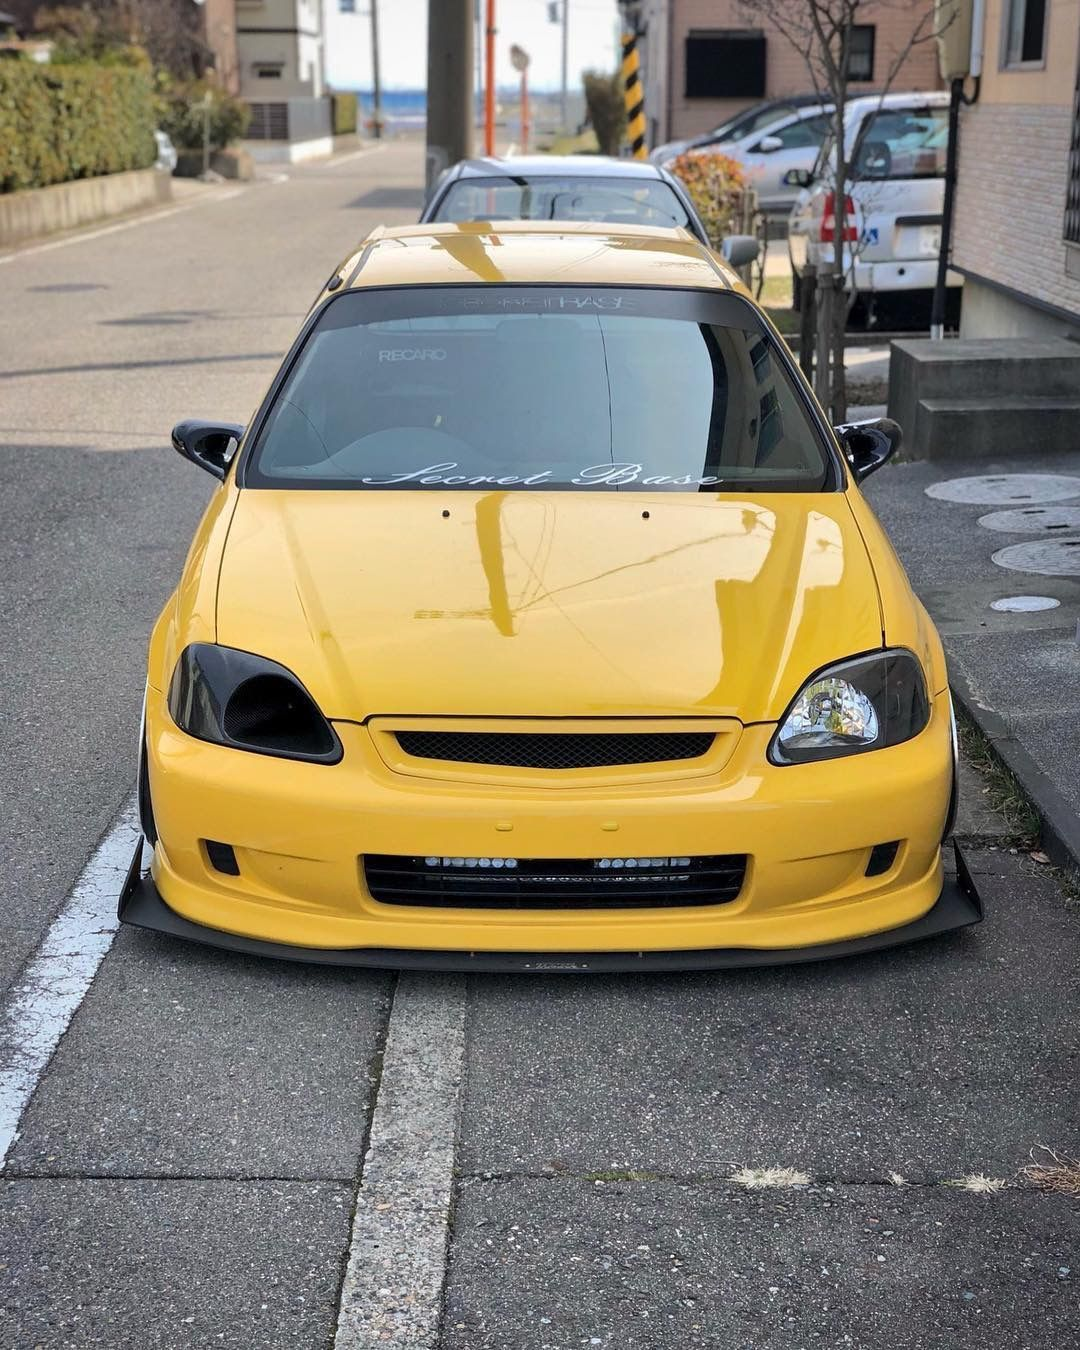 Ek9 The first Civic Type R and The most beautiful for all